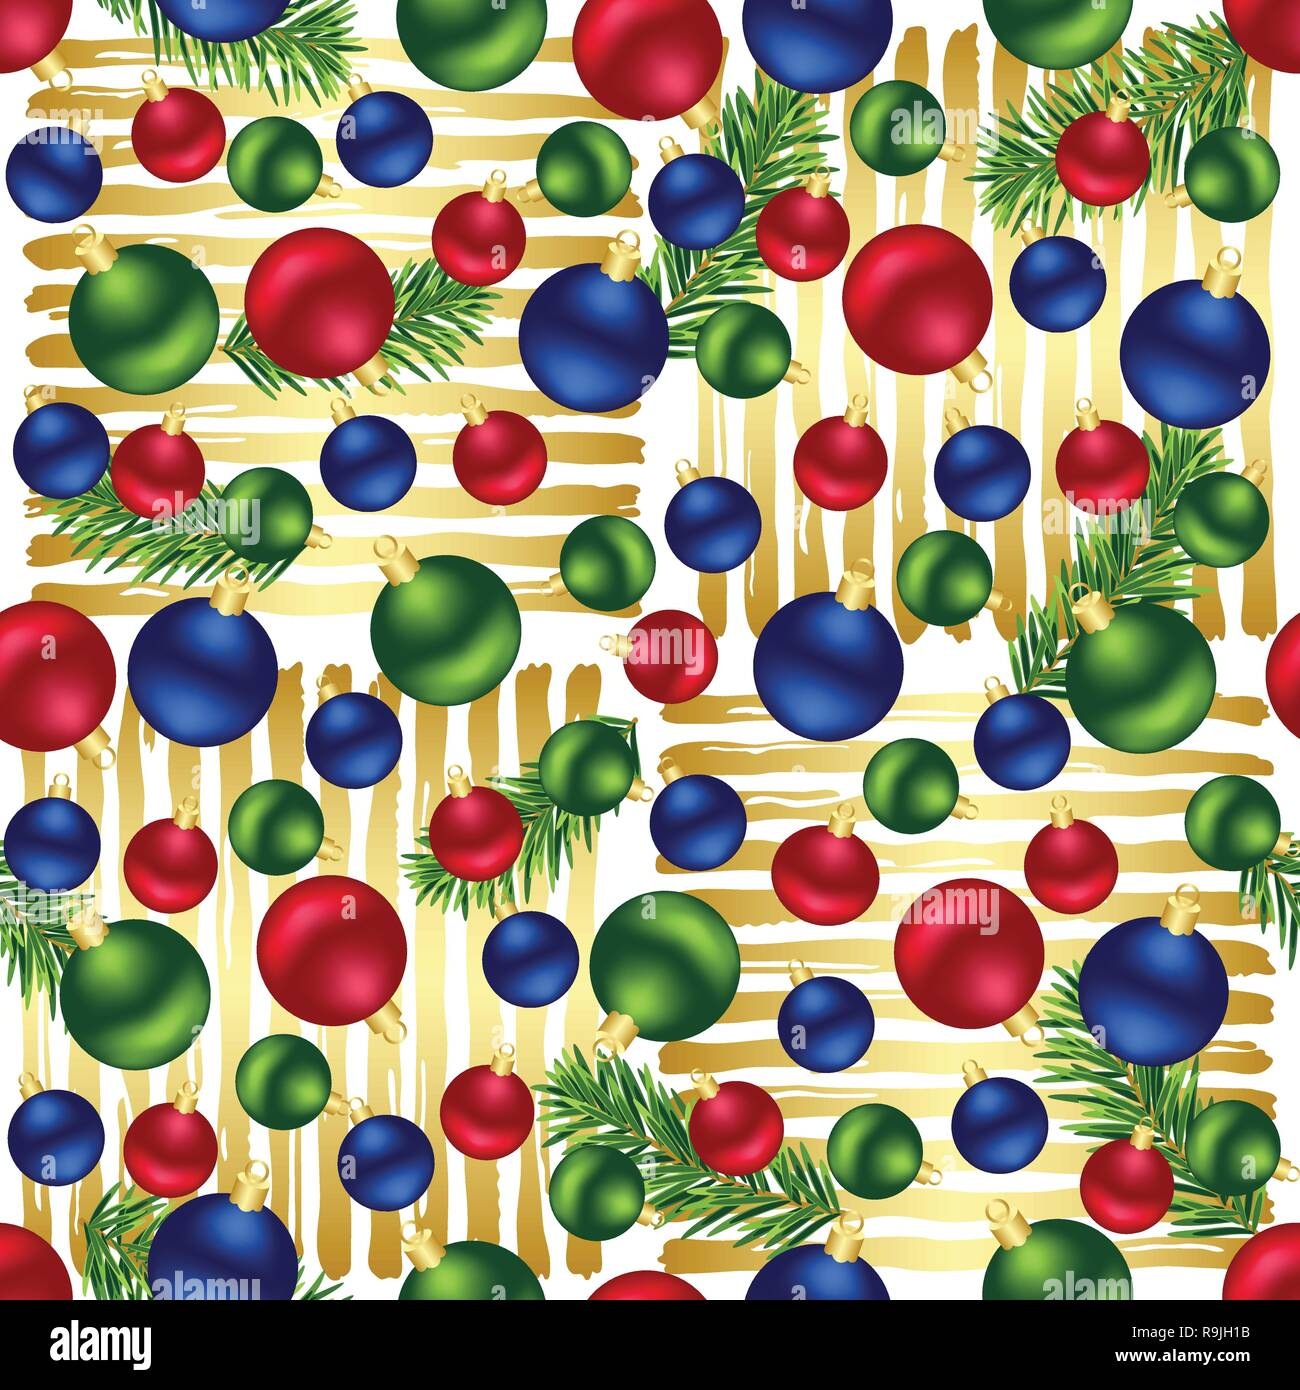 Christmas Red Blue Green Ornaments Fir Tree Branches And Golden Stripes Seamless Pattern For Holidays Home Decor Textile And Gift Wrap Stock Vector Image Art Alamy